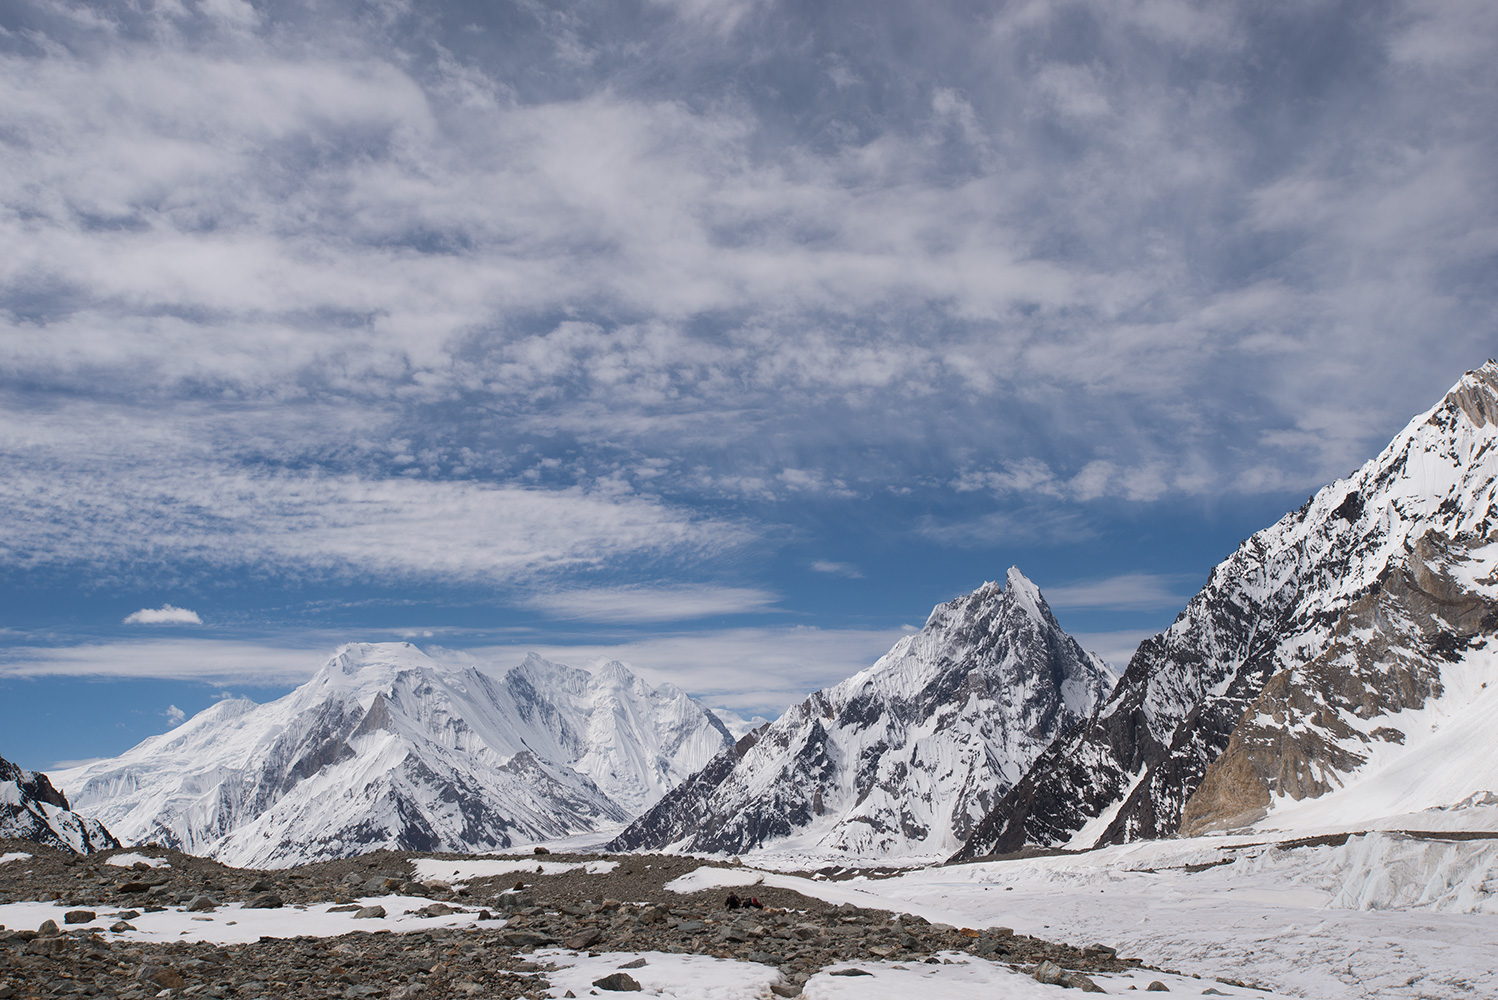 A view to Chogolisa, Mitre Peak etc from the approach to Broad Peak base camp.